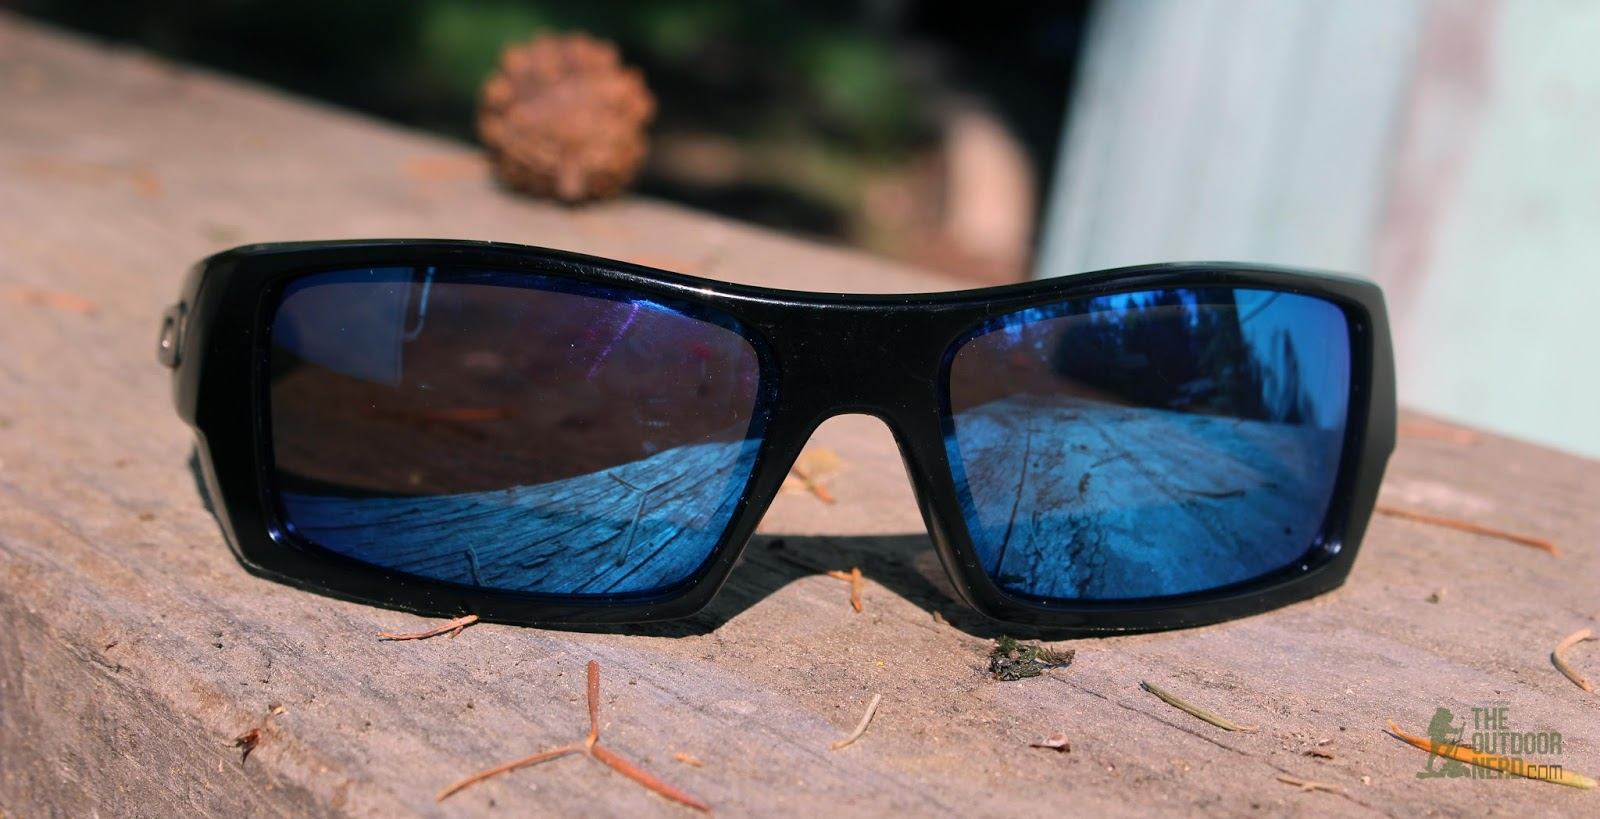 Review: Walleva Replacement Lenses For Oakley GasCan Sunglasses ...